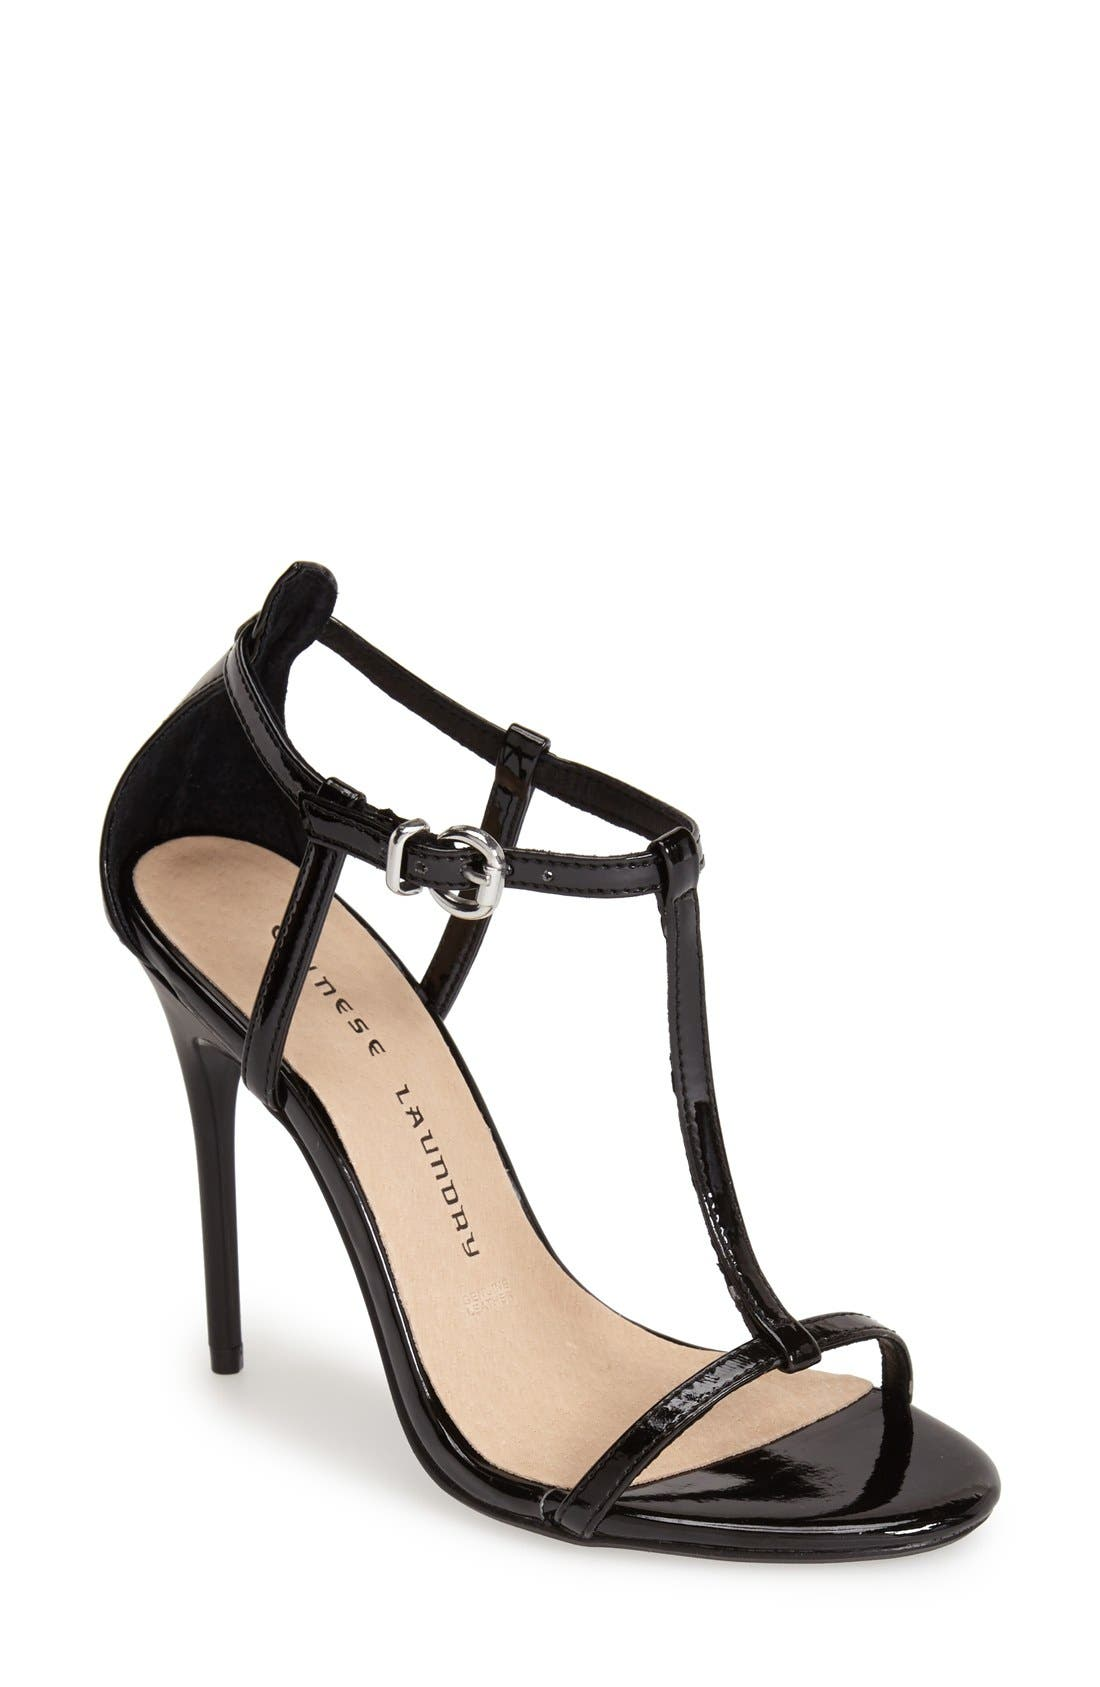 CHINESE LAUNDRY 'Leo' Patent T-Strap Sandal, Main, color, 001